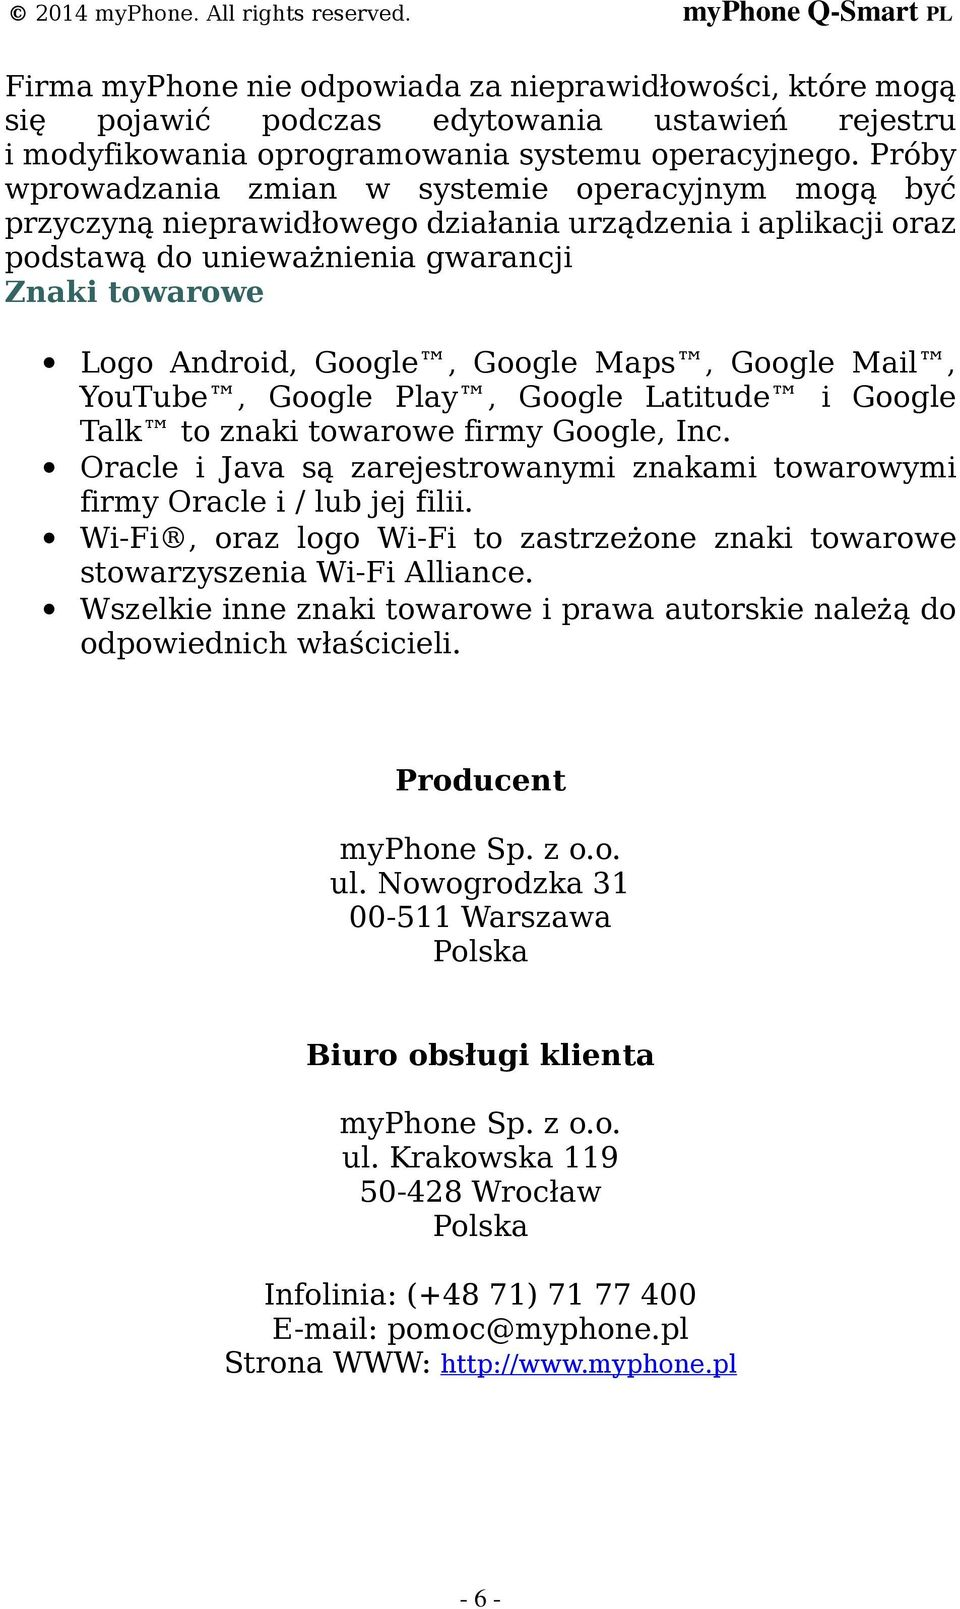 Google Maps, Google Mail, YouTube, Google Play, Google Latitude i Google Talk to znaki towarowe firmy Google, Inc. Oracle i Java są zarejestrowanymi znakami towarowymi firmy Oracle i / lub jej filii.